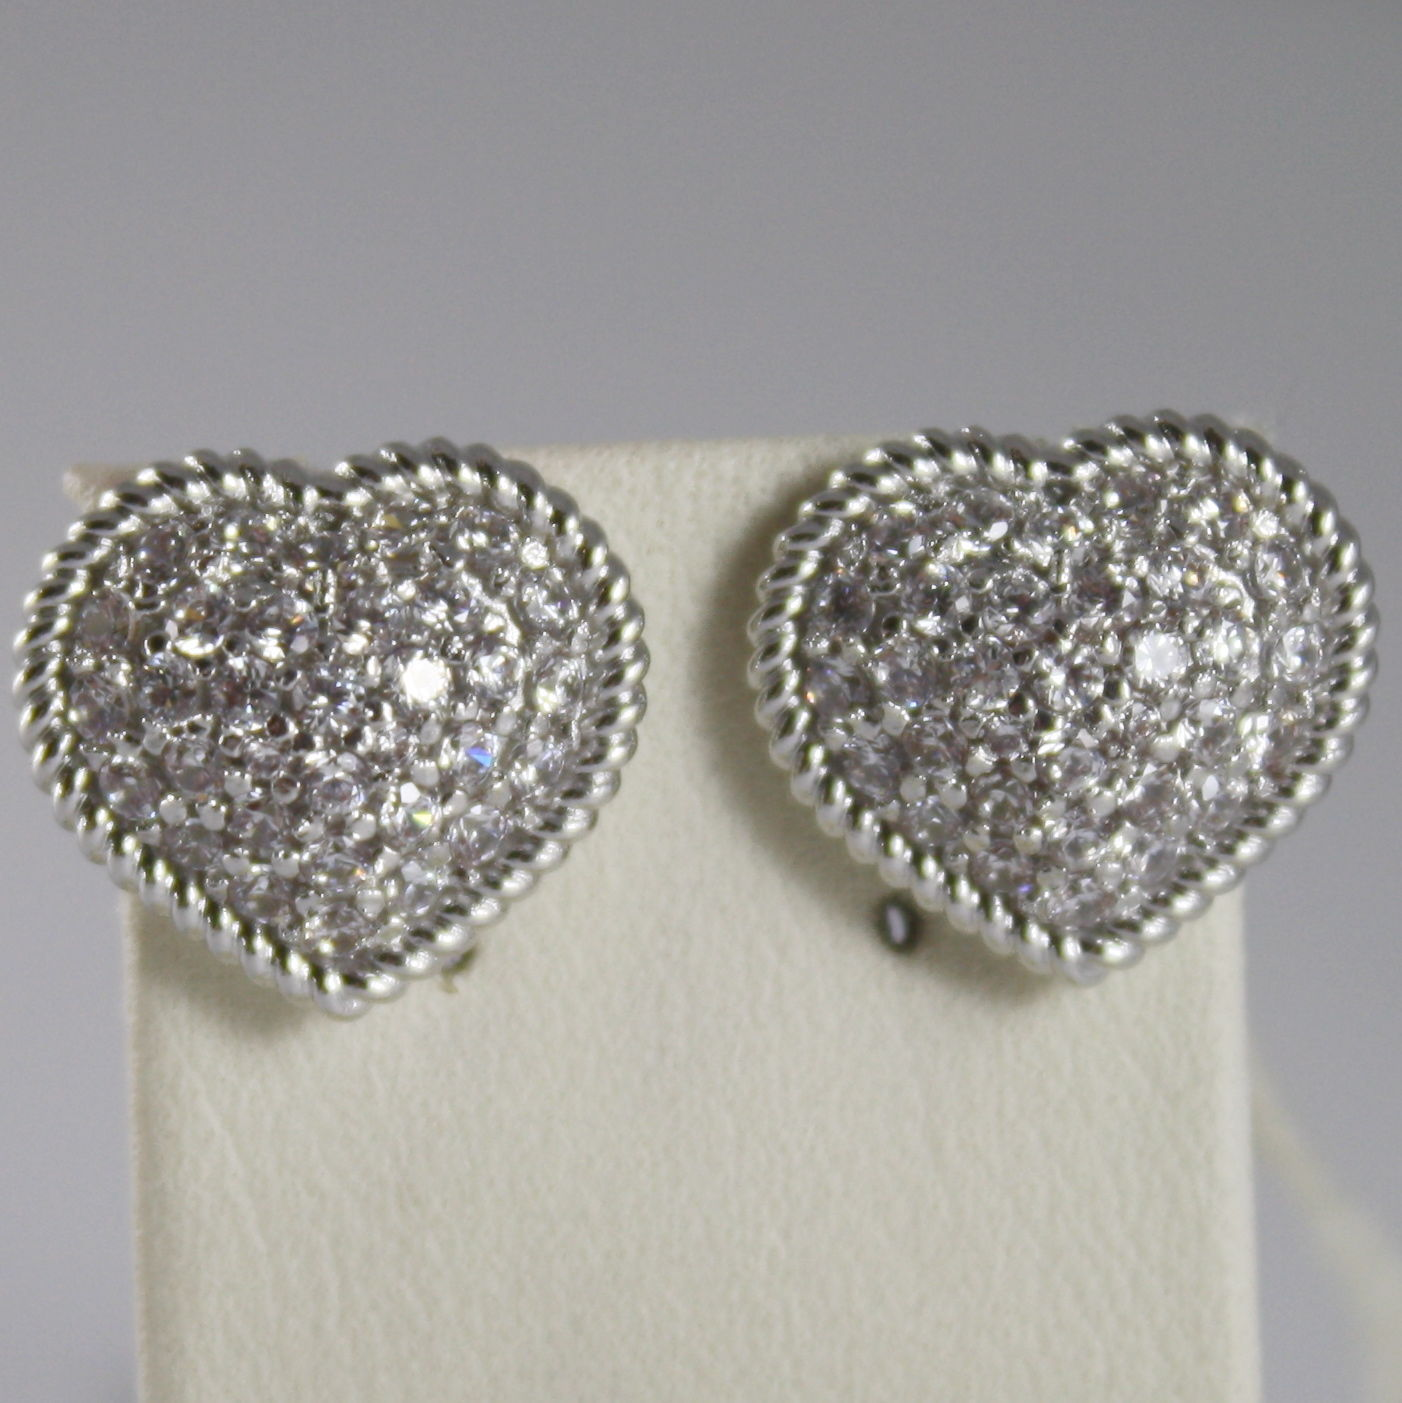 RHODIUM BRONZE EARRINGS HEART, CUBIC ZIRCONIA B14OBB58, BY REBECCA MADE IN ITALY